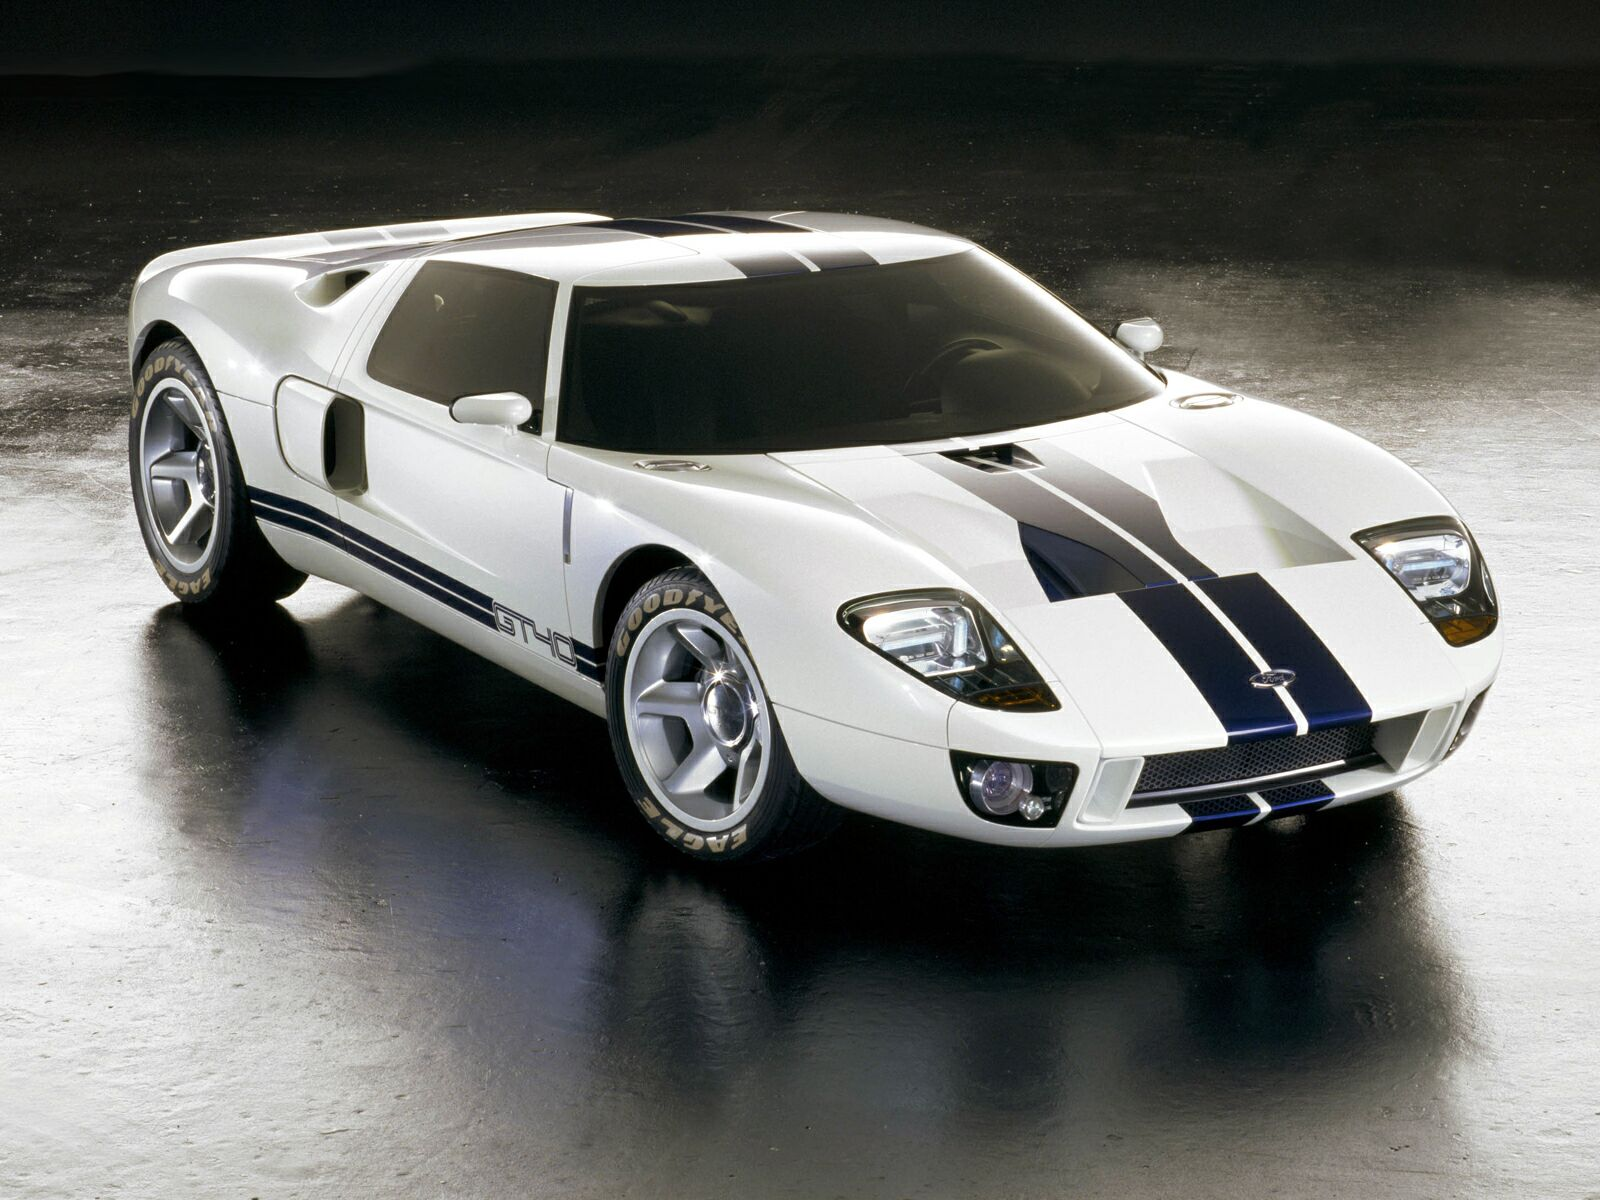 Ford GT90 concept shown in